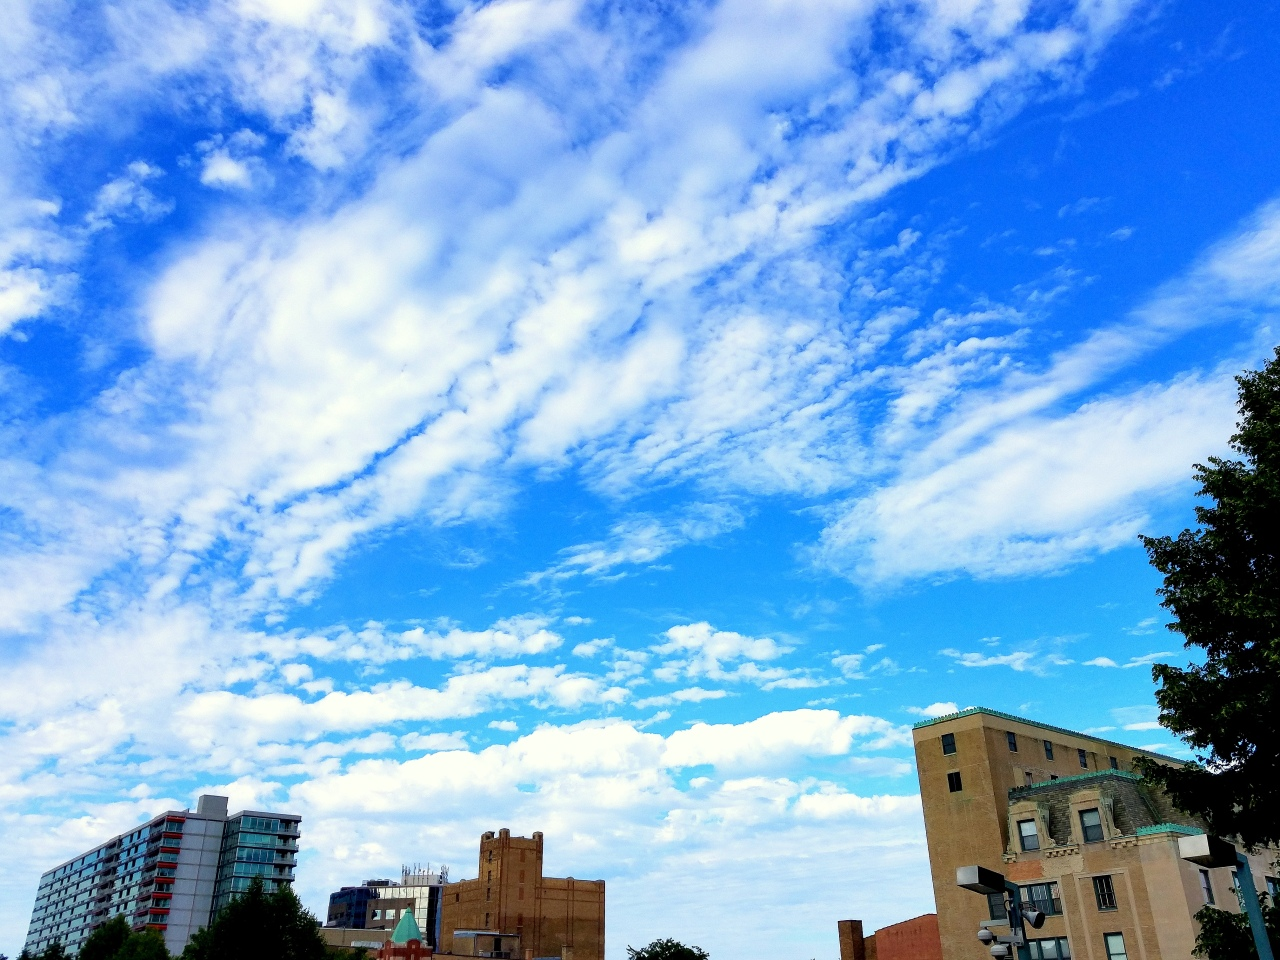 Clouds over Evanston, August 26 2016